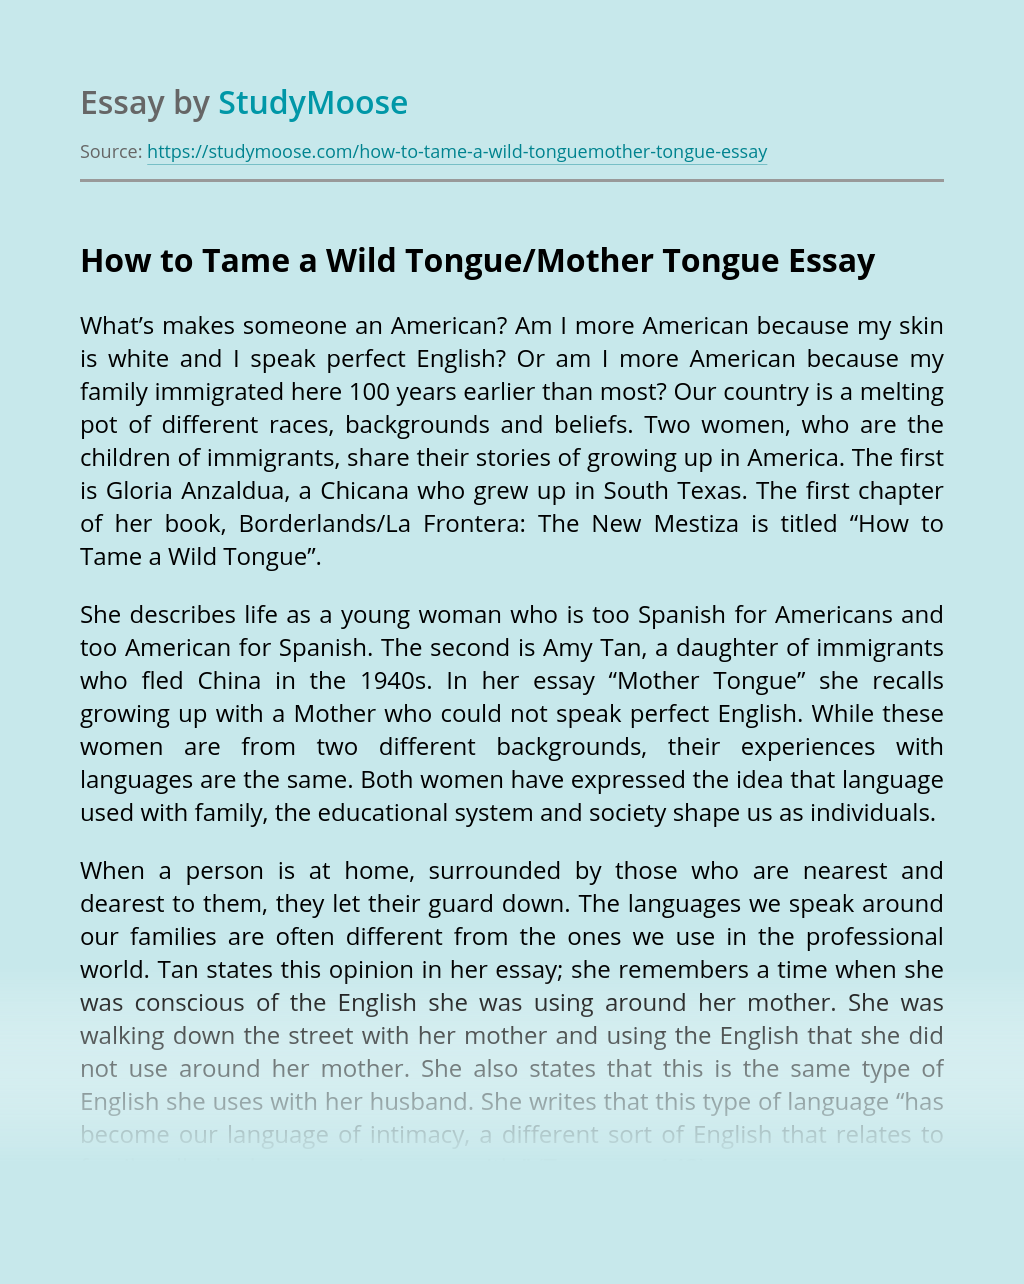 How to Tame a Wild Tongue/Mother Tongue